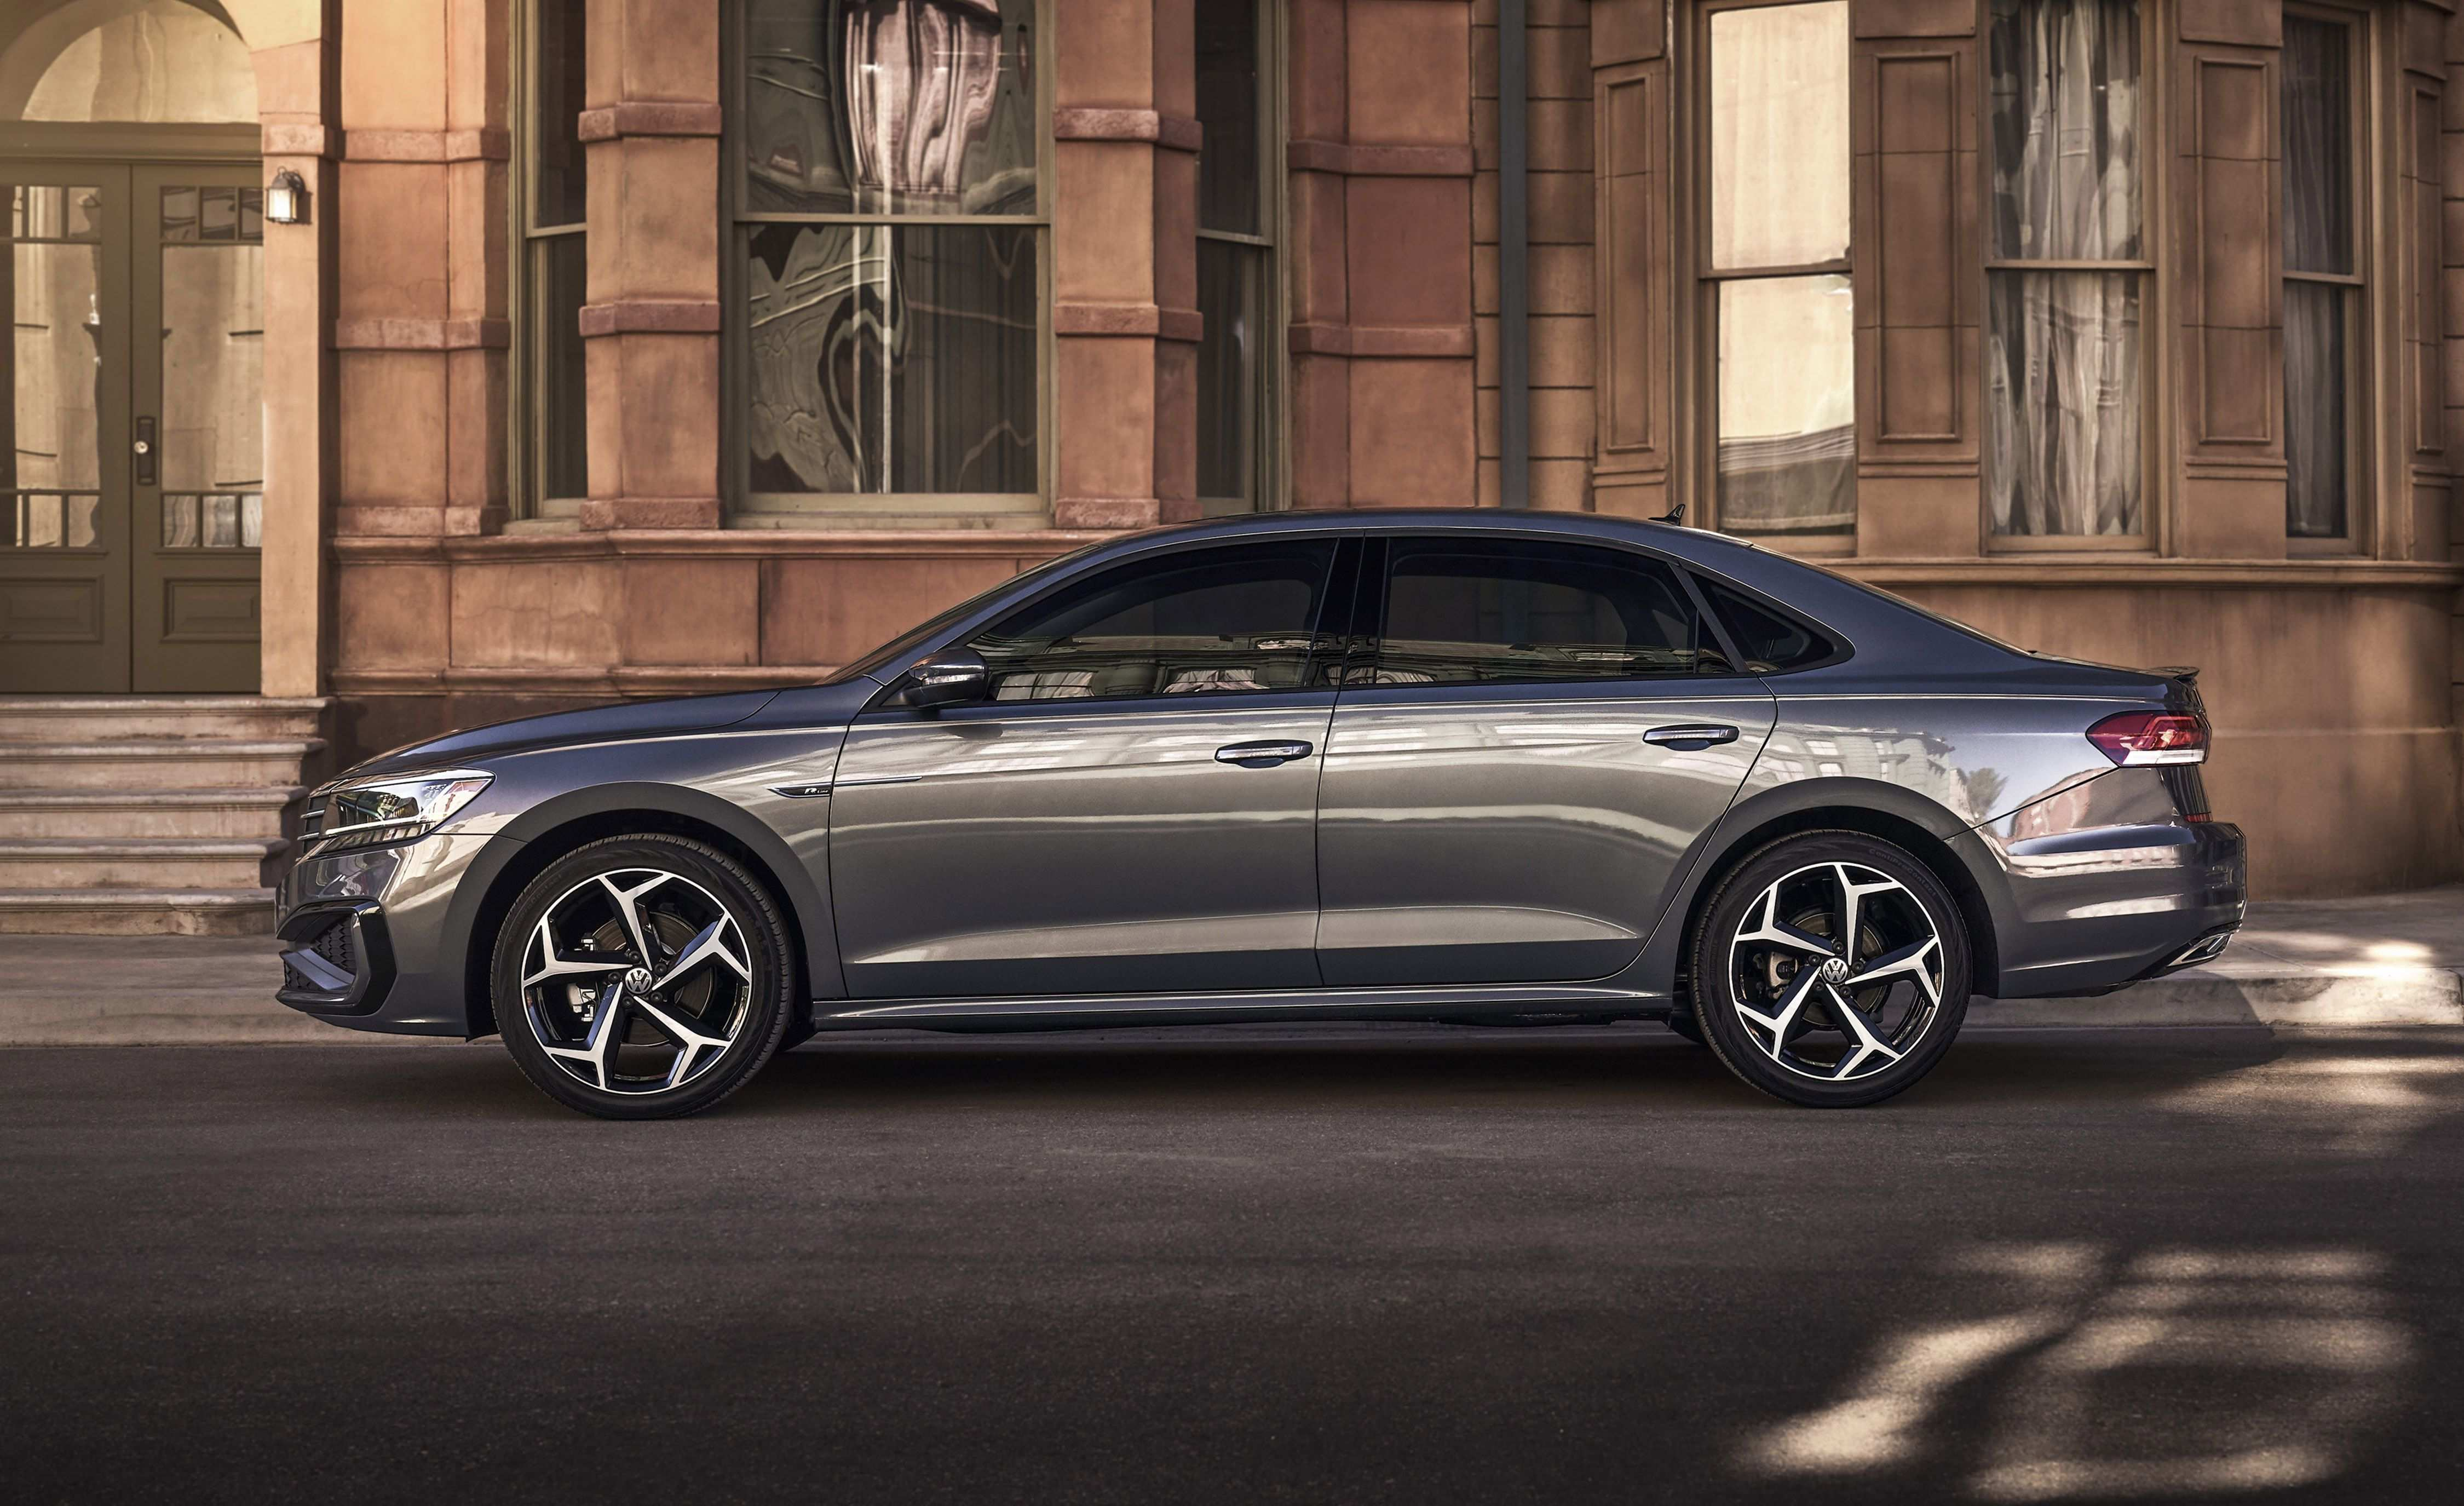 14 New Volkswagen New Passat 2020 Exterior And Interior